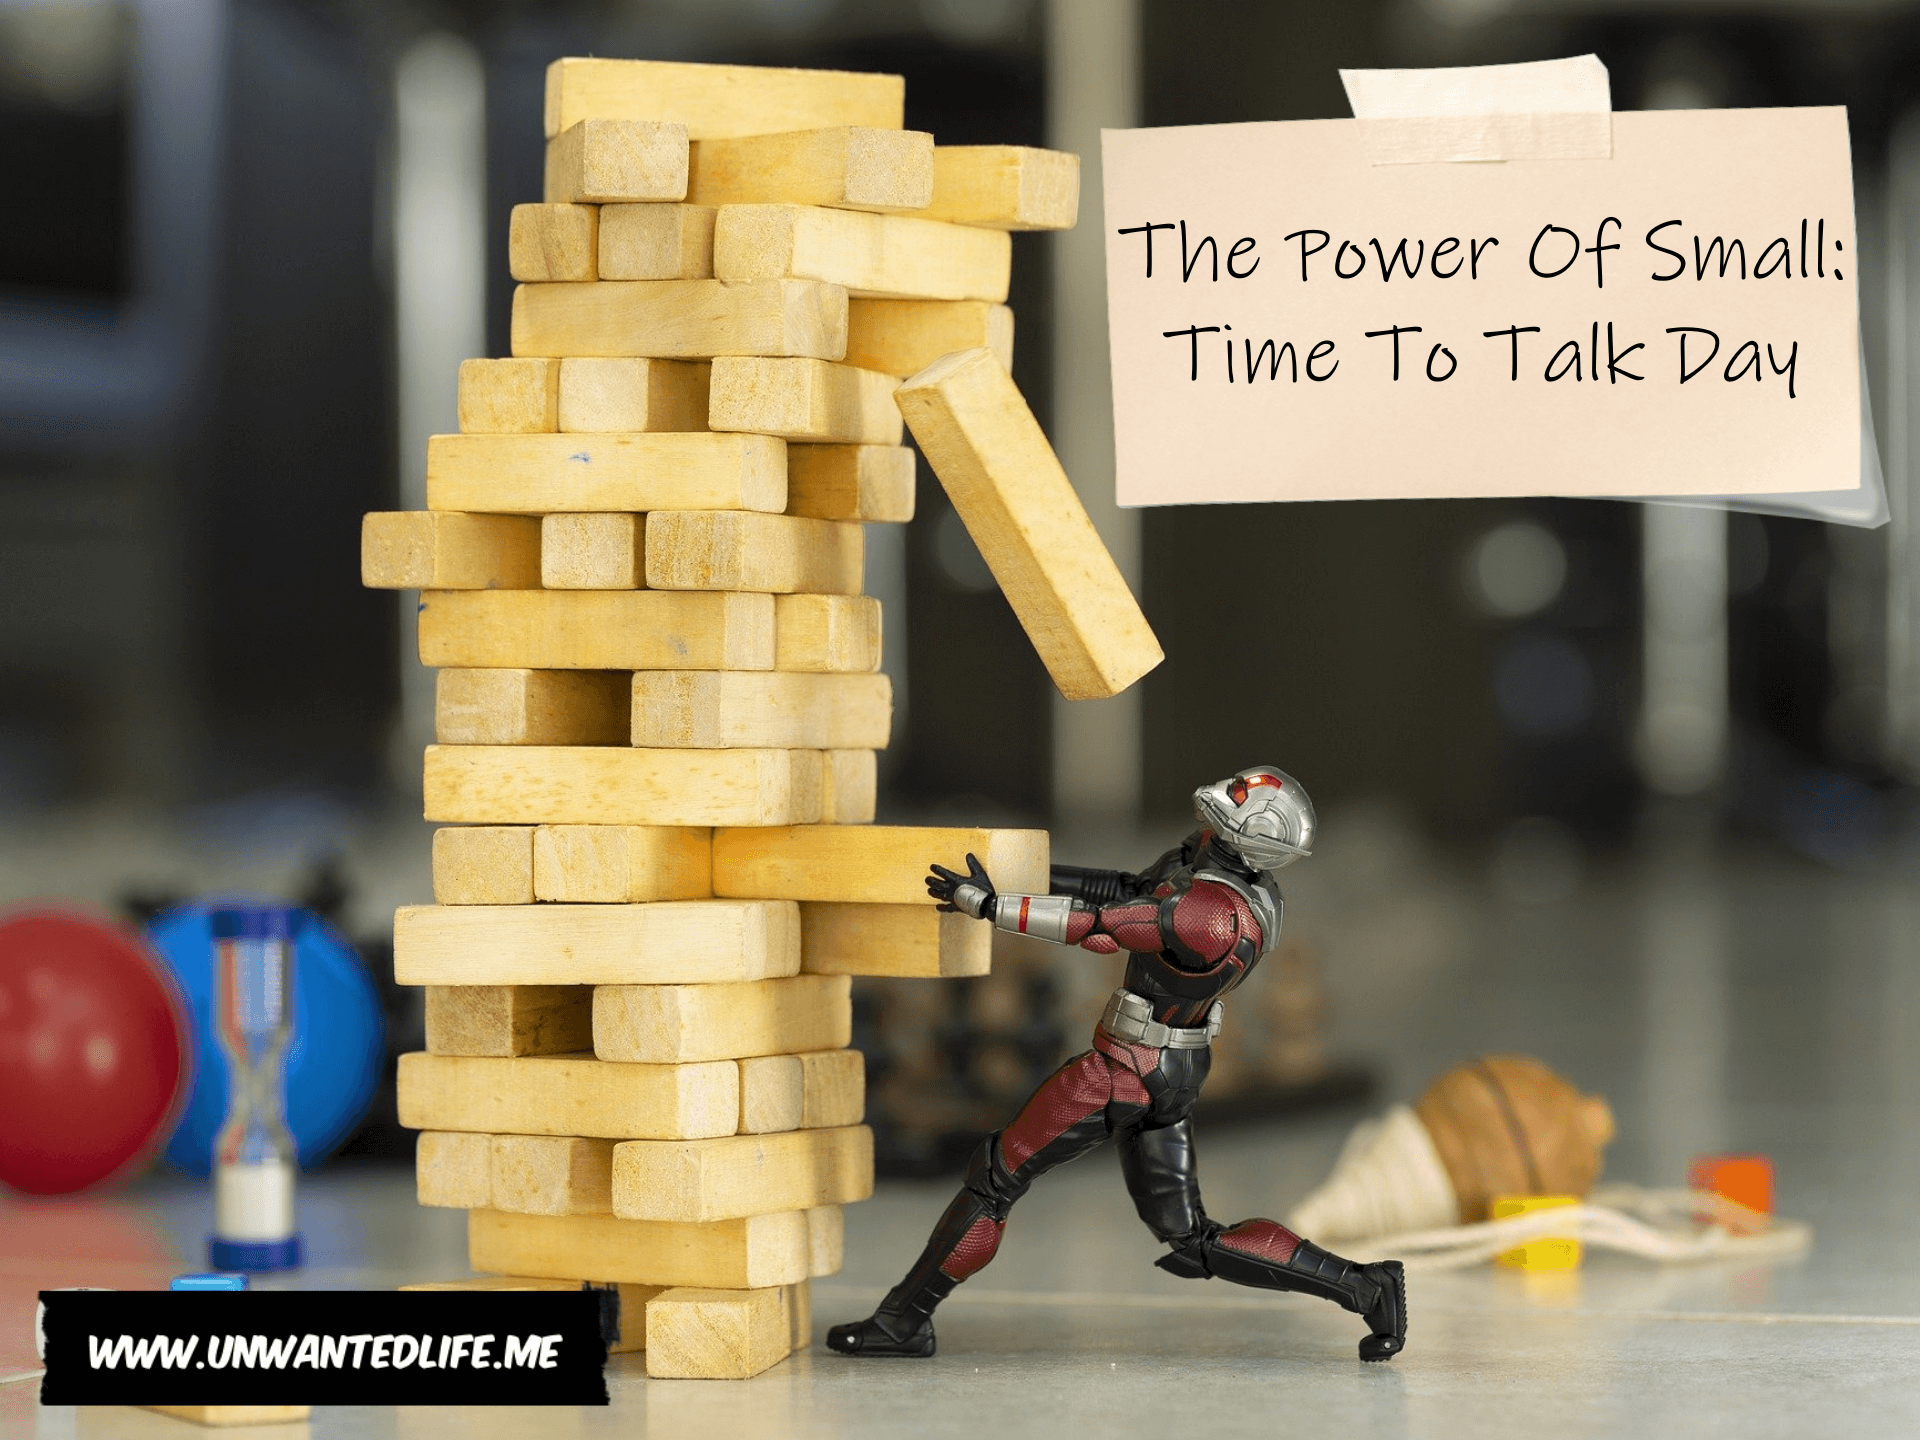 A photo of a Marvel's and Disney's Ant Man action figure pulling a Jenga piece with the title of the article - The Power Of Small: Time To Talk Day - in the top right corner of the image